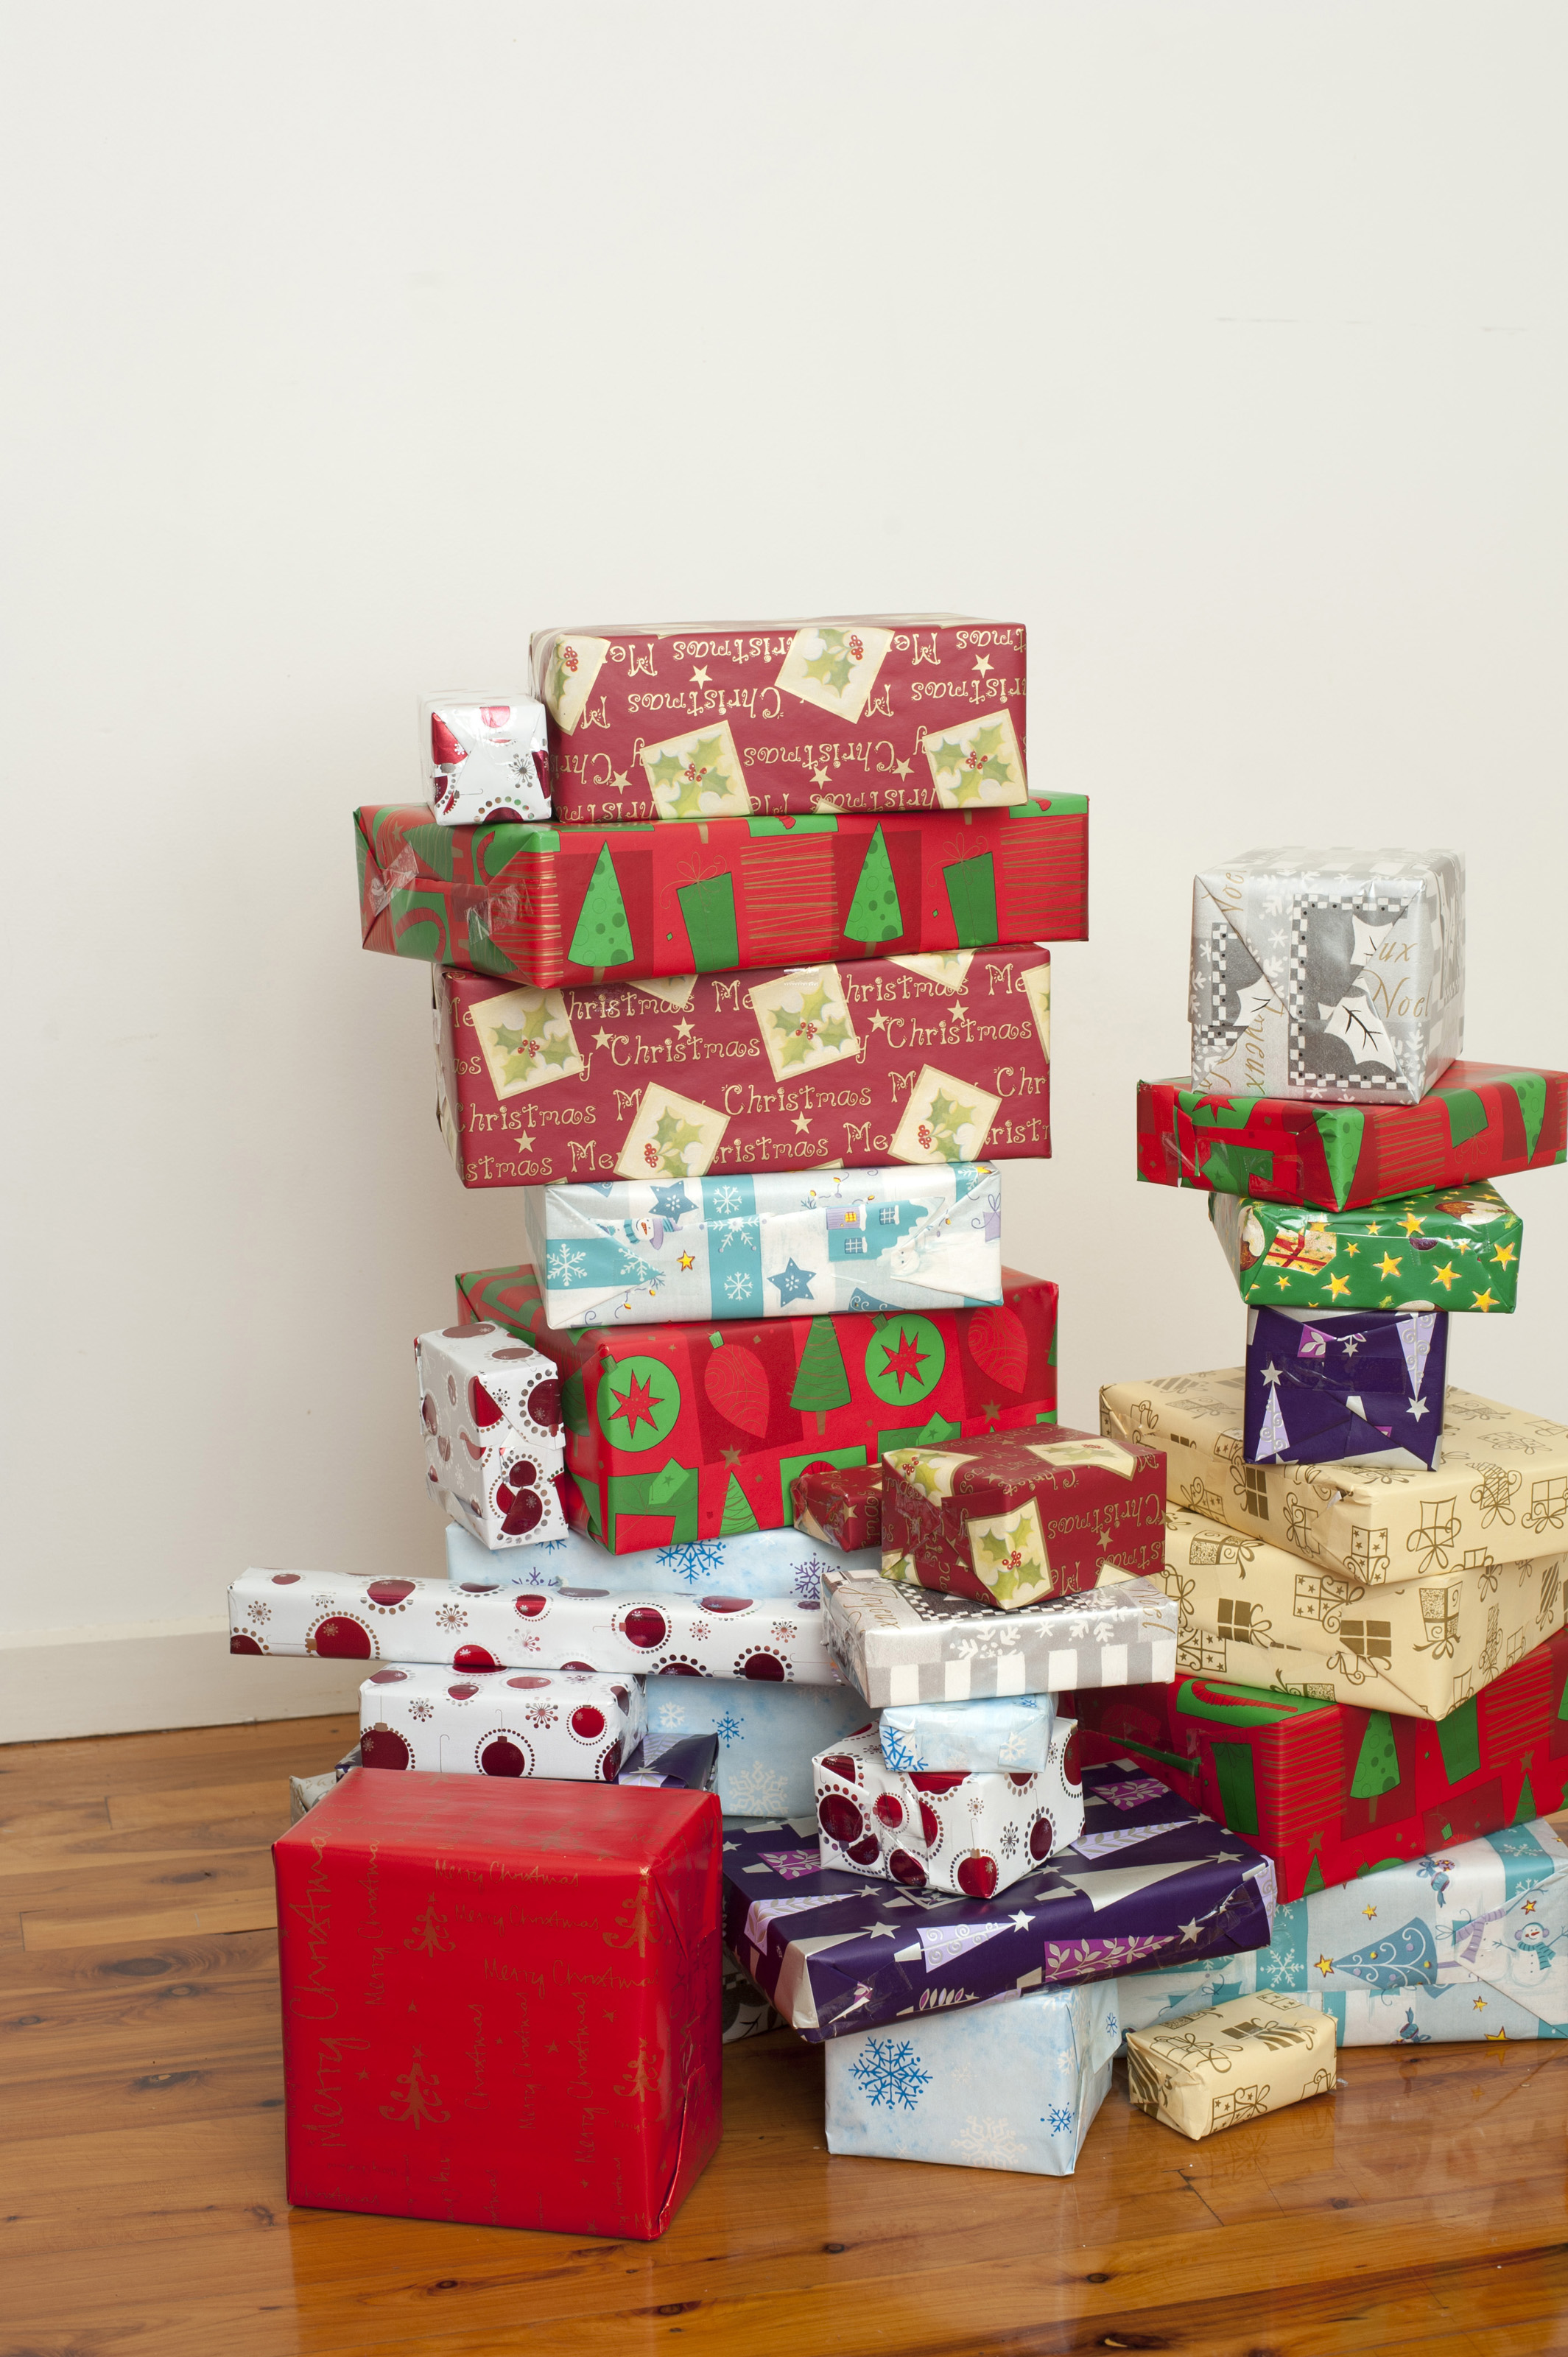 Collection of colourful gift wrapped presents 8271 stockarch free accept license and download image negle Images